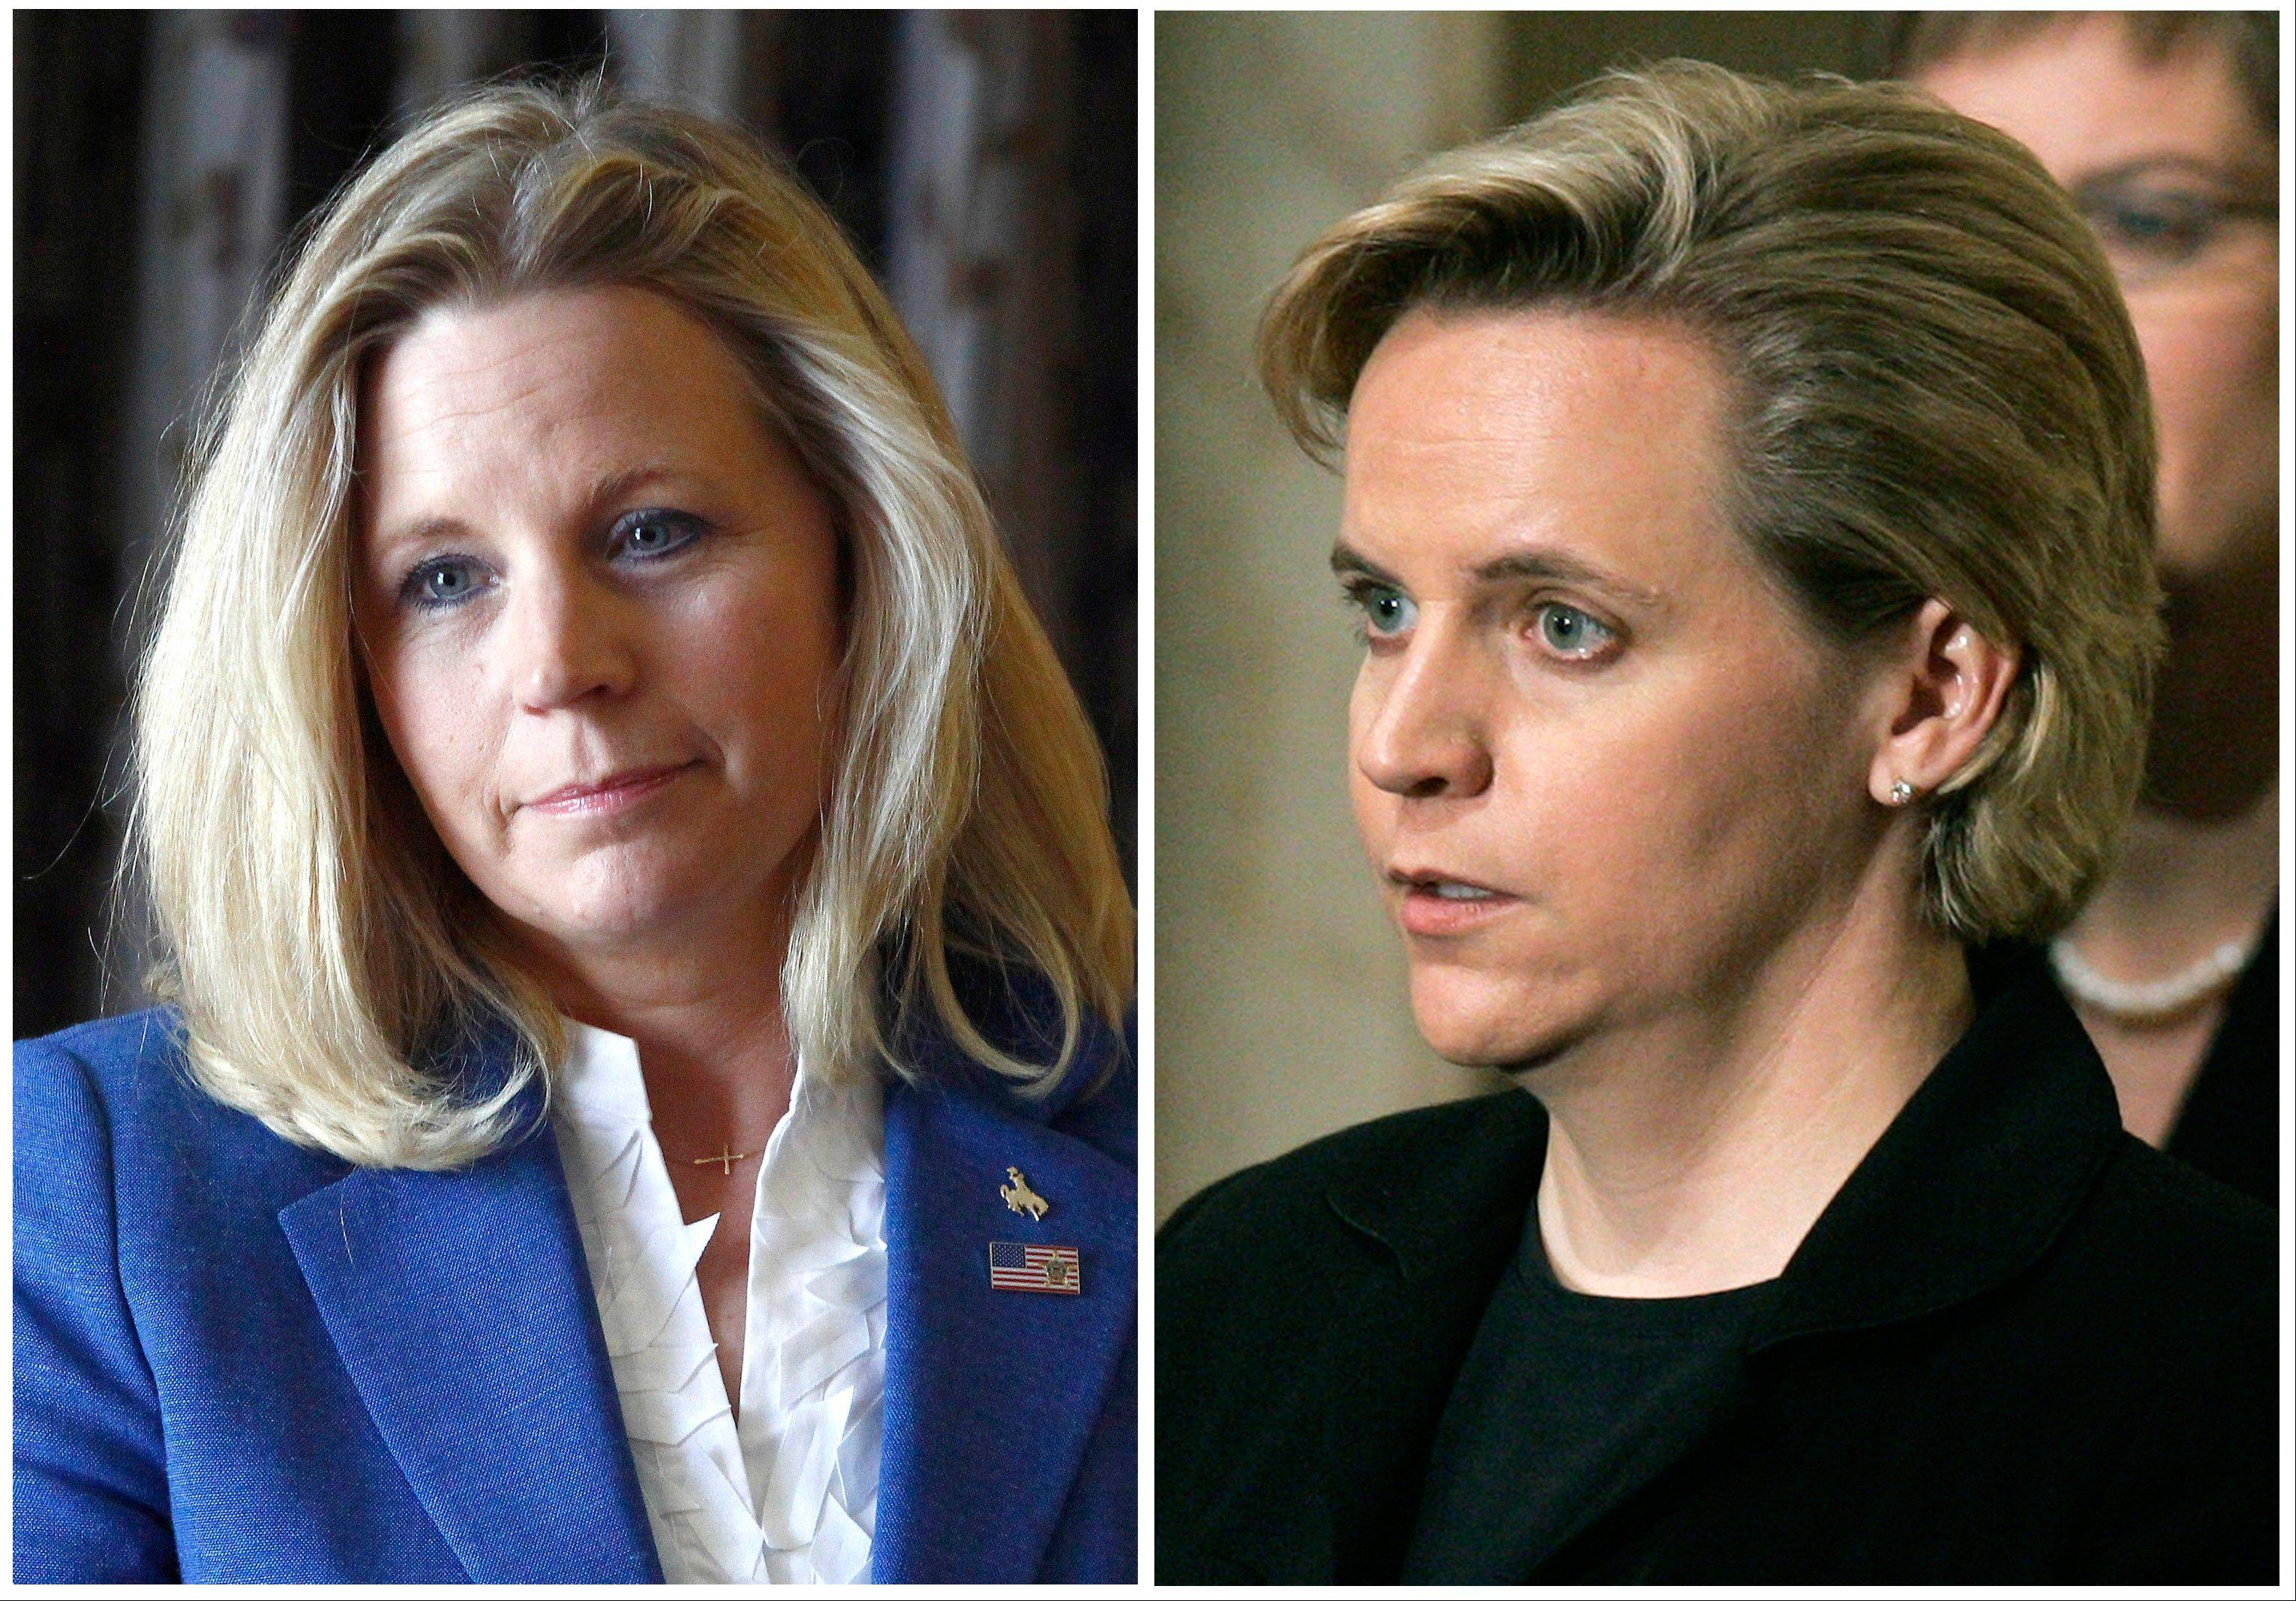 Liz Cheney, left, is running in a Republican primary for a U.S. Senate seat from Wyoming. She disagrees with her sister Mary Cheney, right, who is married to Heather Poe, over the topic of same-sex marriage.